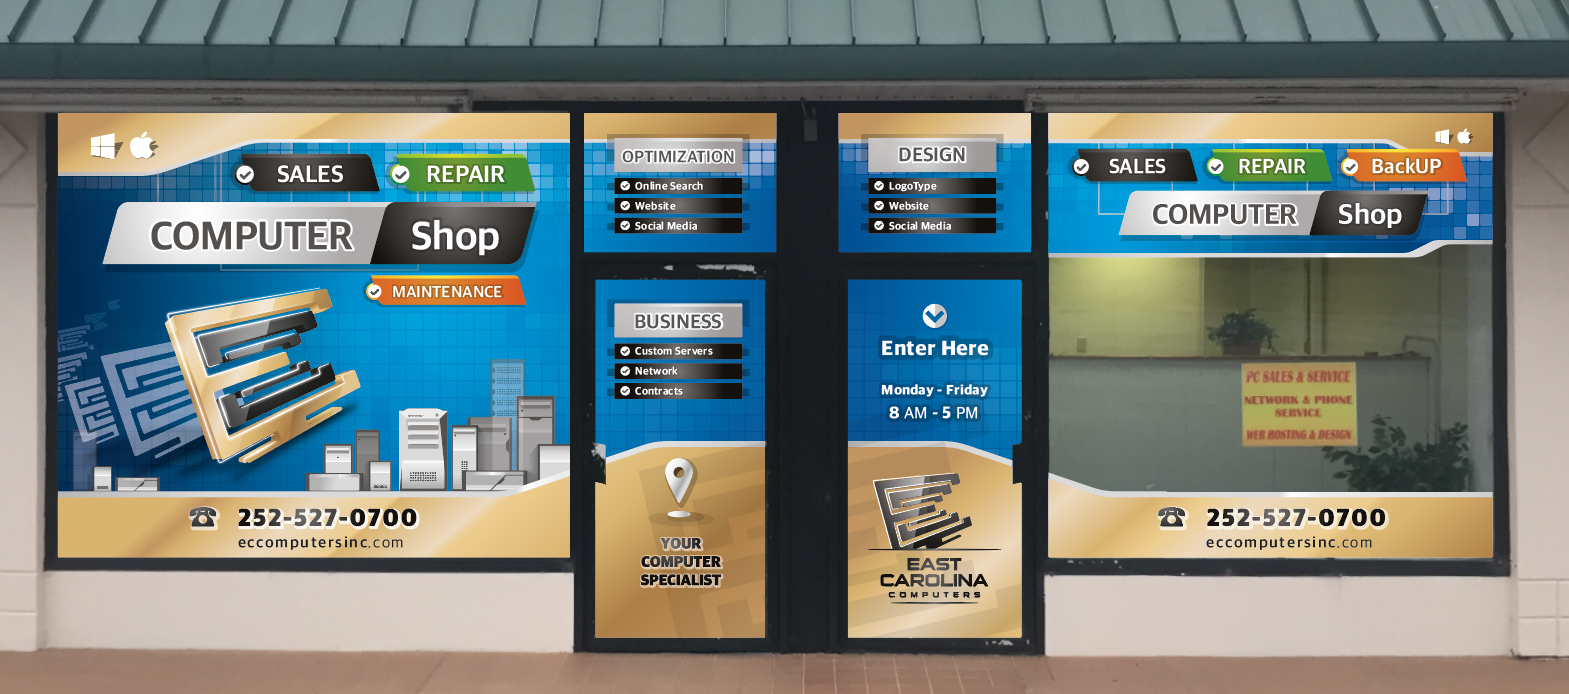 Create a Store Front Window Display Design